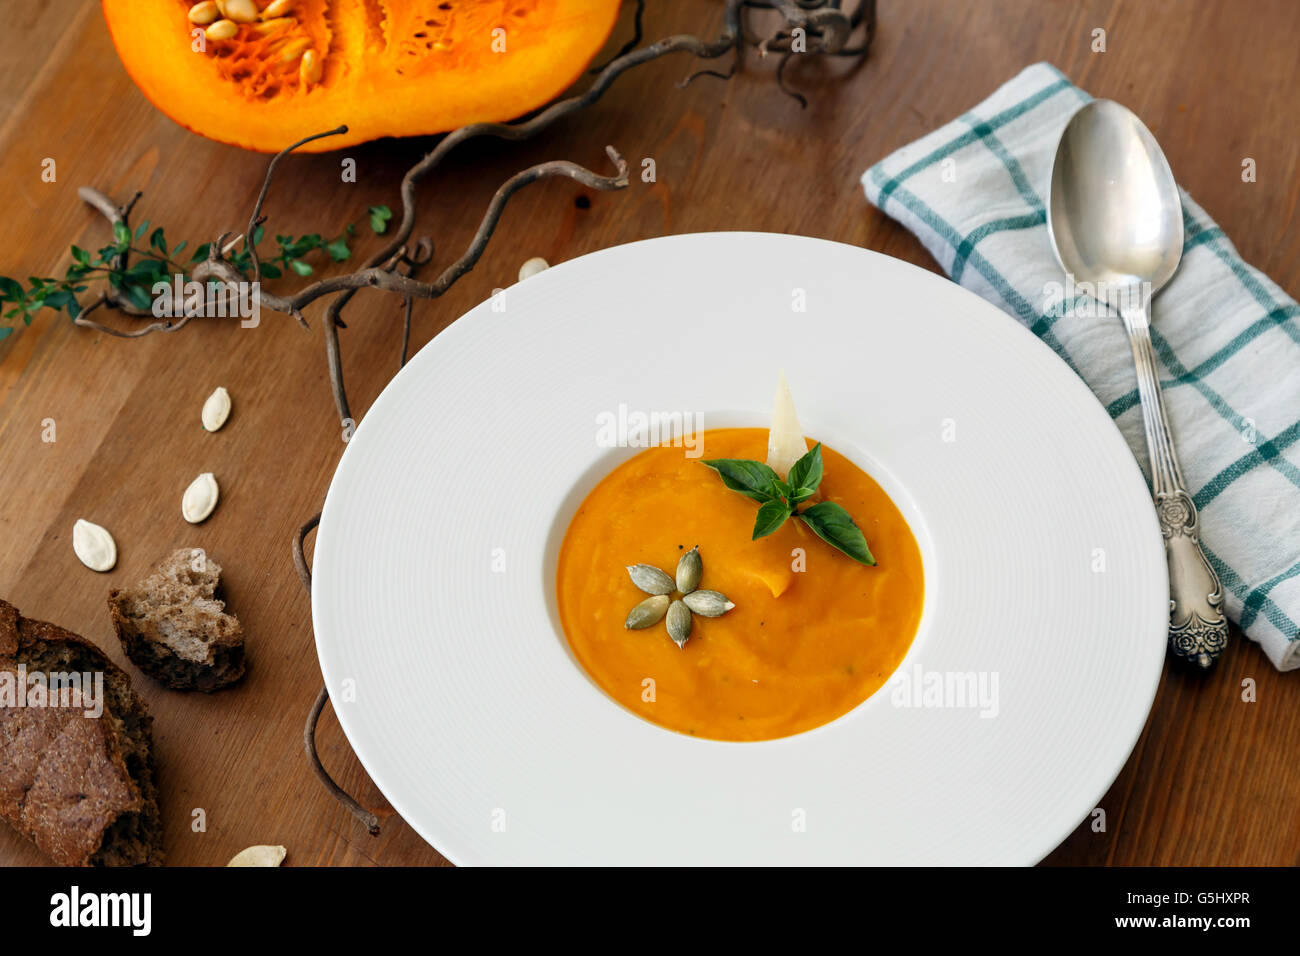 Pumpkin soup in white modern plate, dietary vegetable soup. - Stock Image